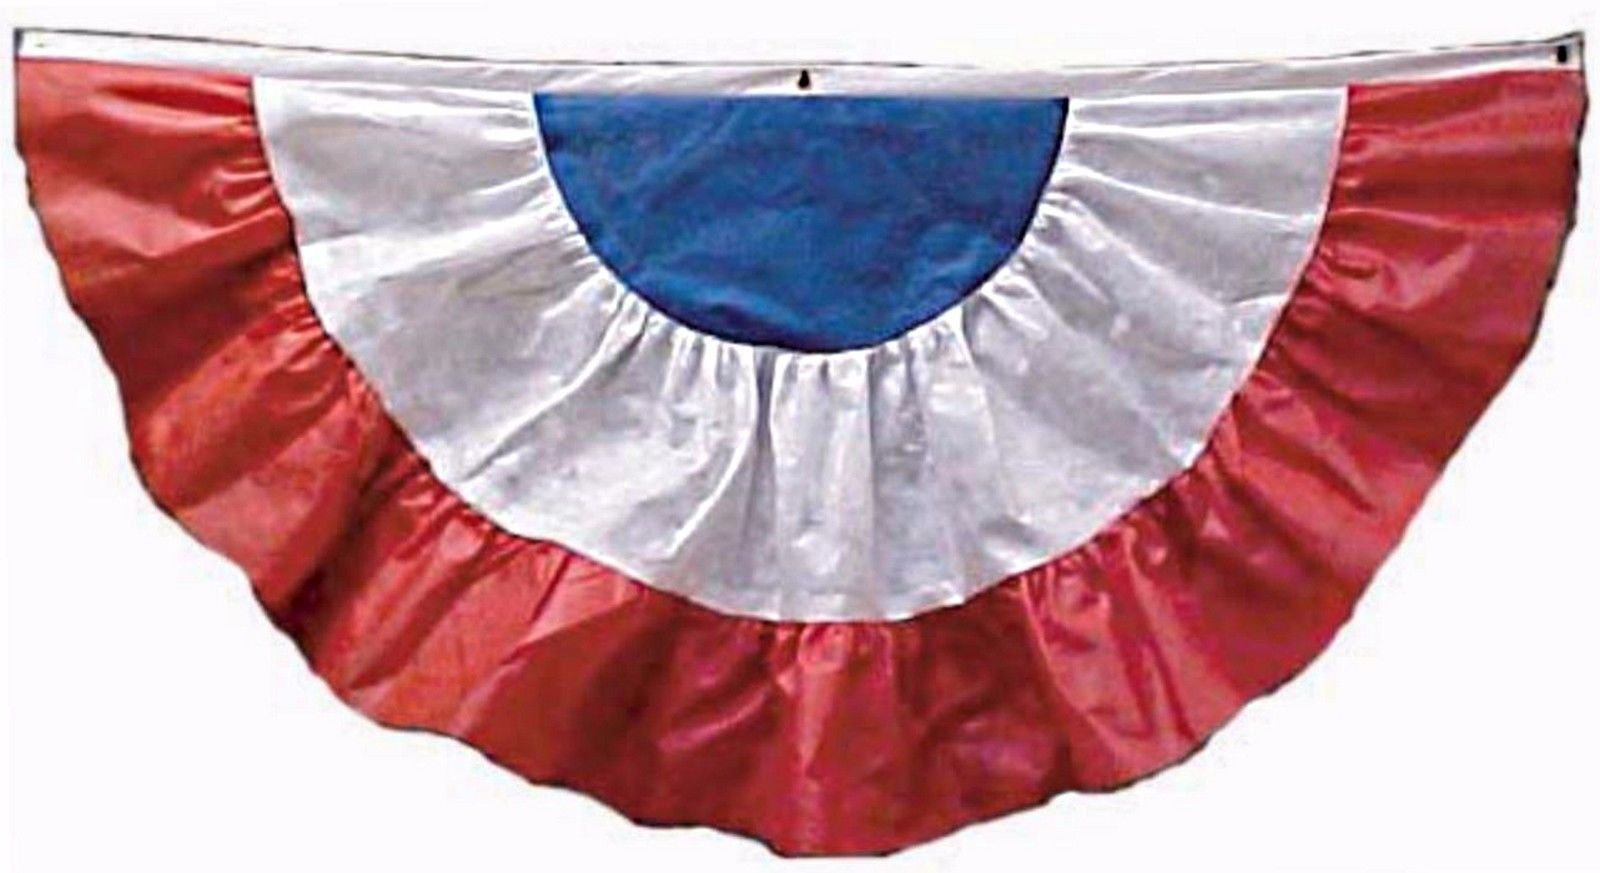 4' x 8' Red, White & Blue Non-Woven Fabric Fan Drapes With Grommet Holes